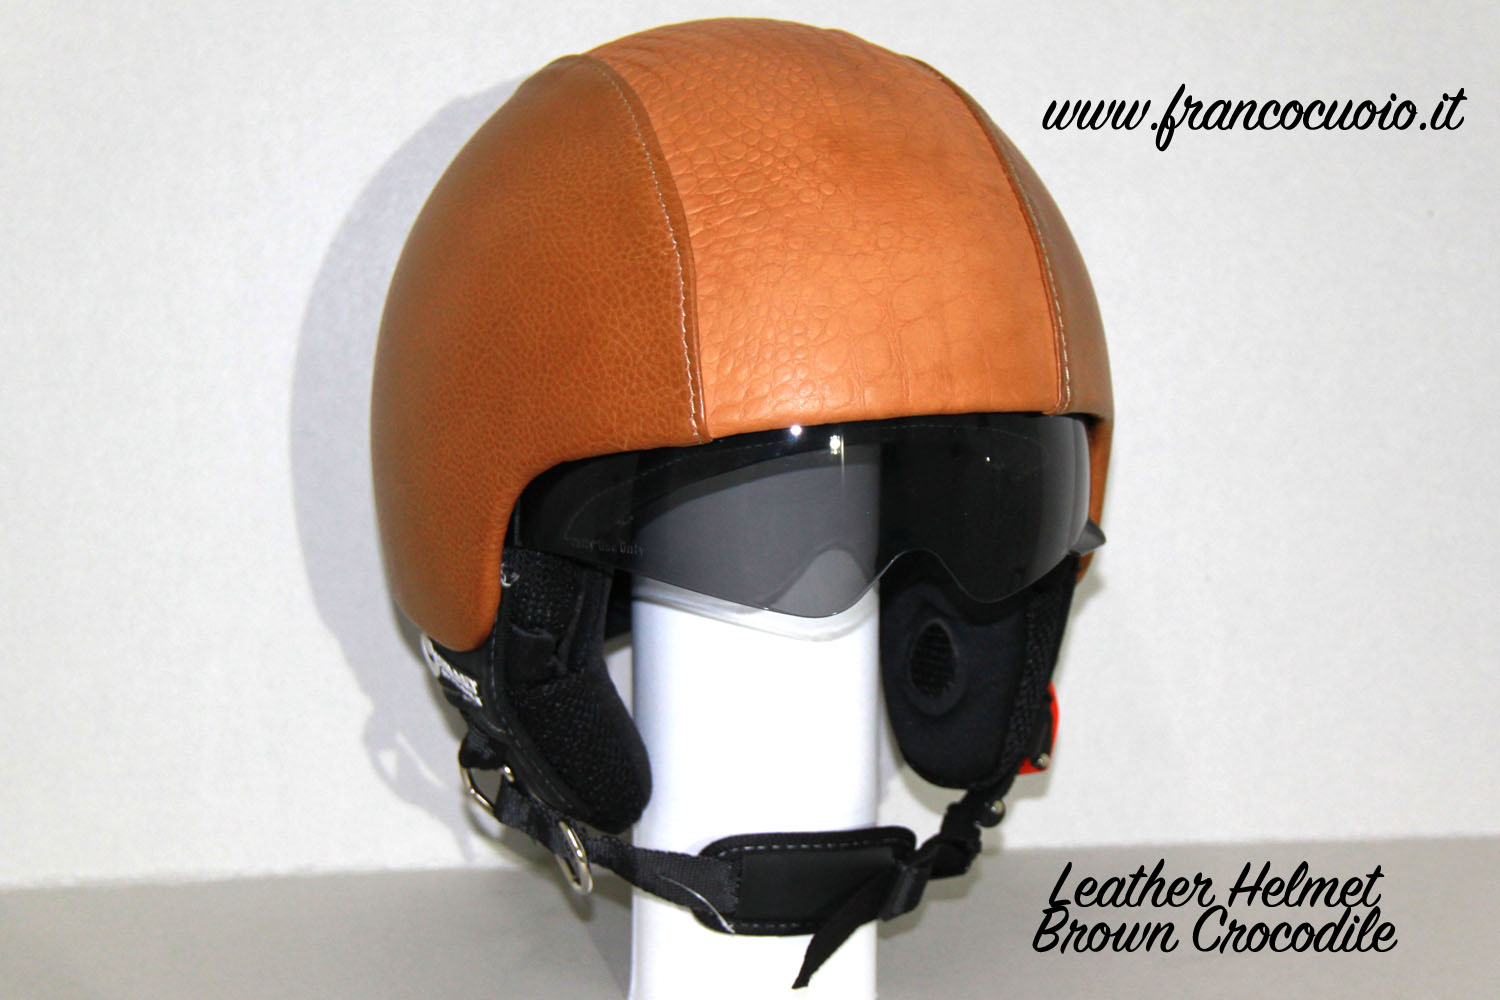 Leather Helmet Brown Crocodile